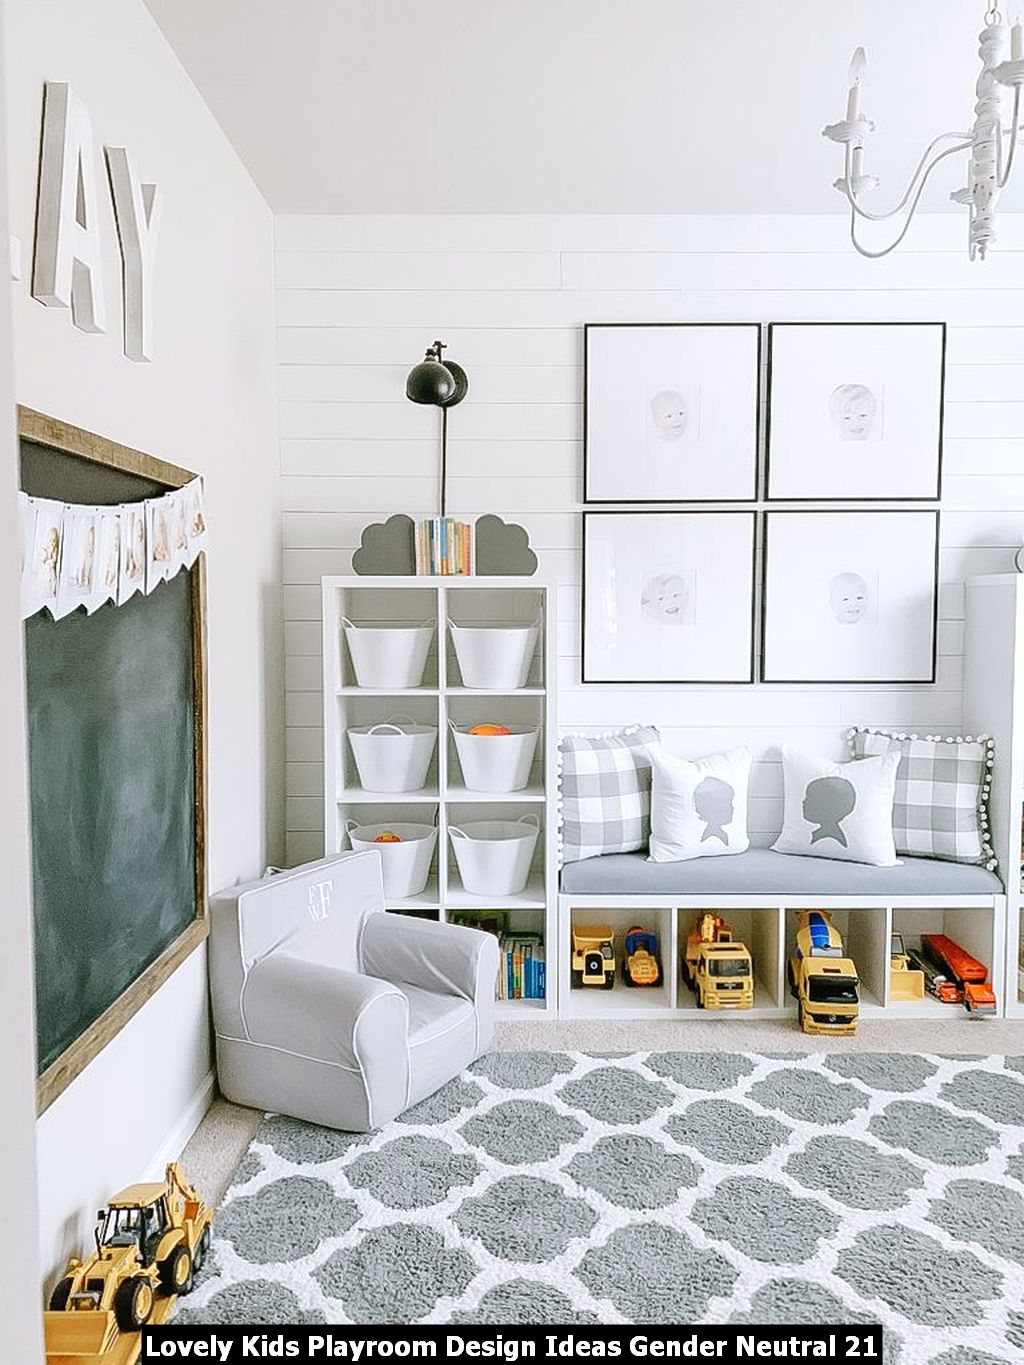 Lovely Kids Playroom Design Ideas Gender Neutral 21